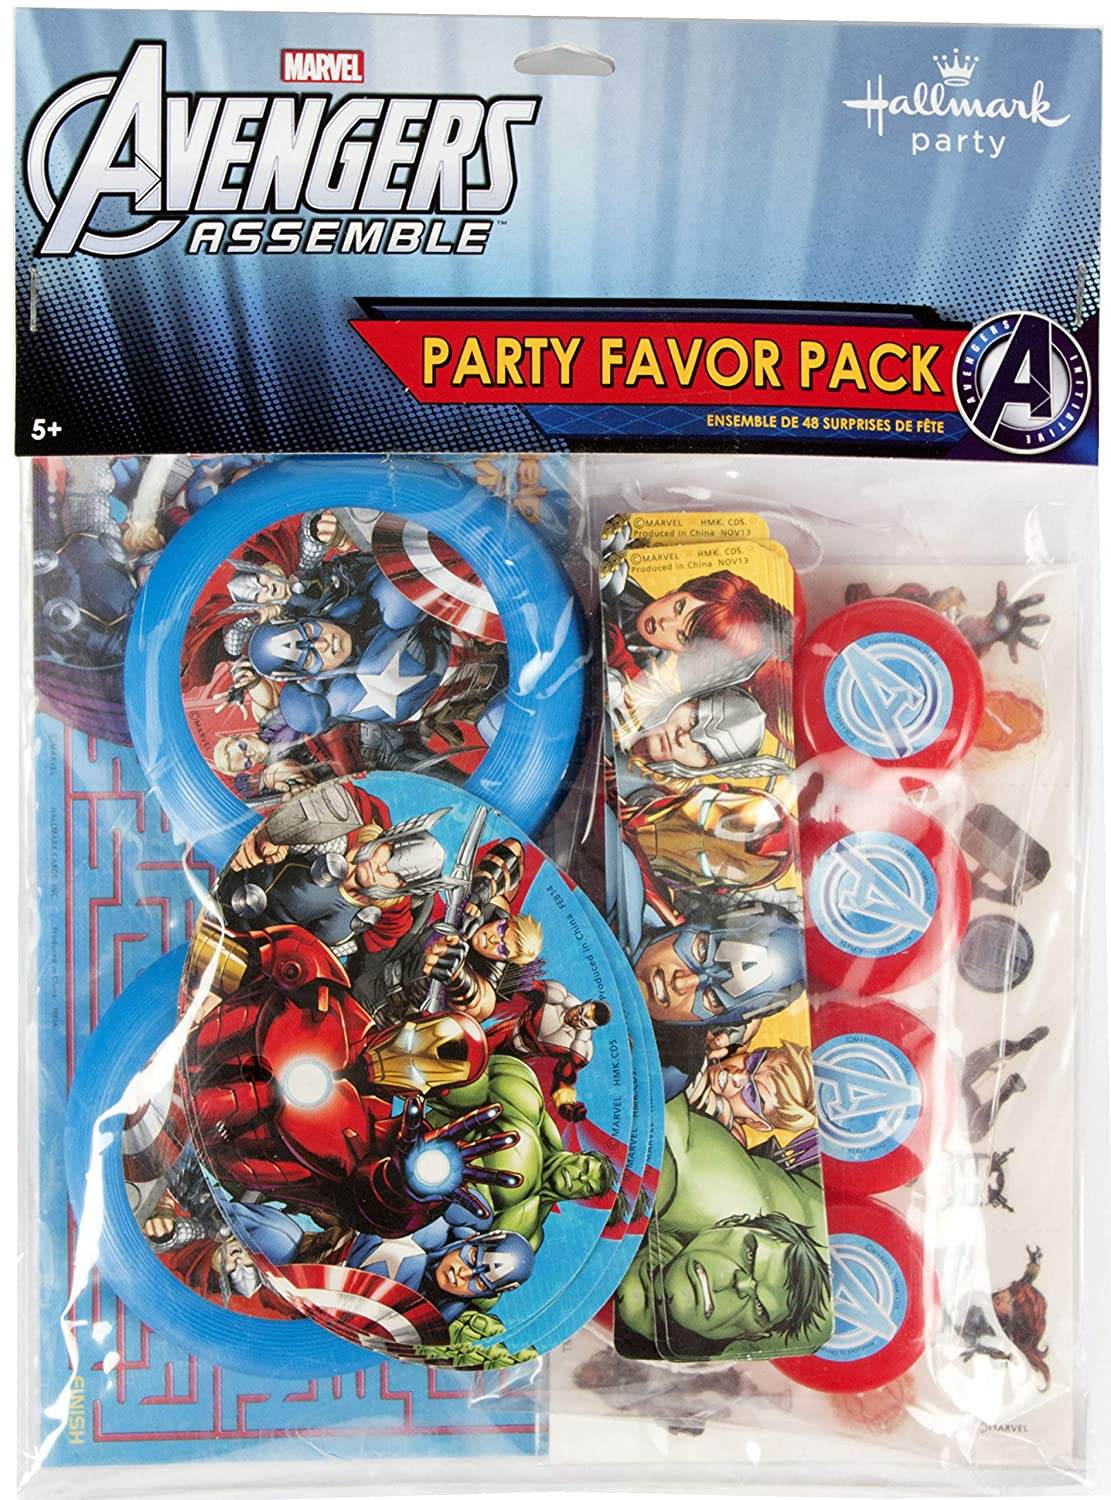 Hallmark Avengers Assemble Favor Pack 48pc